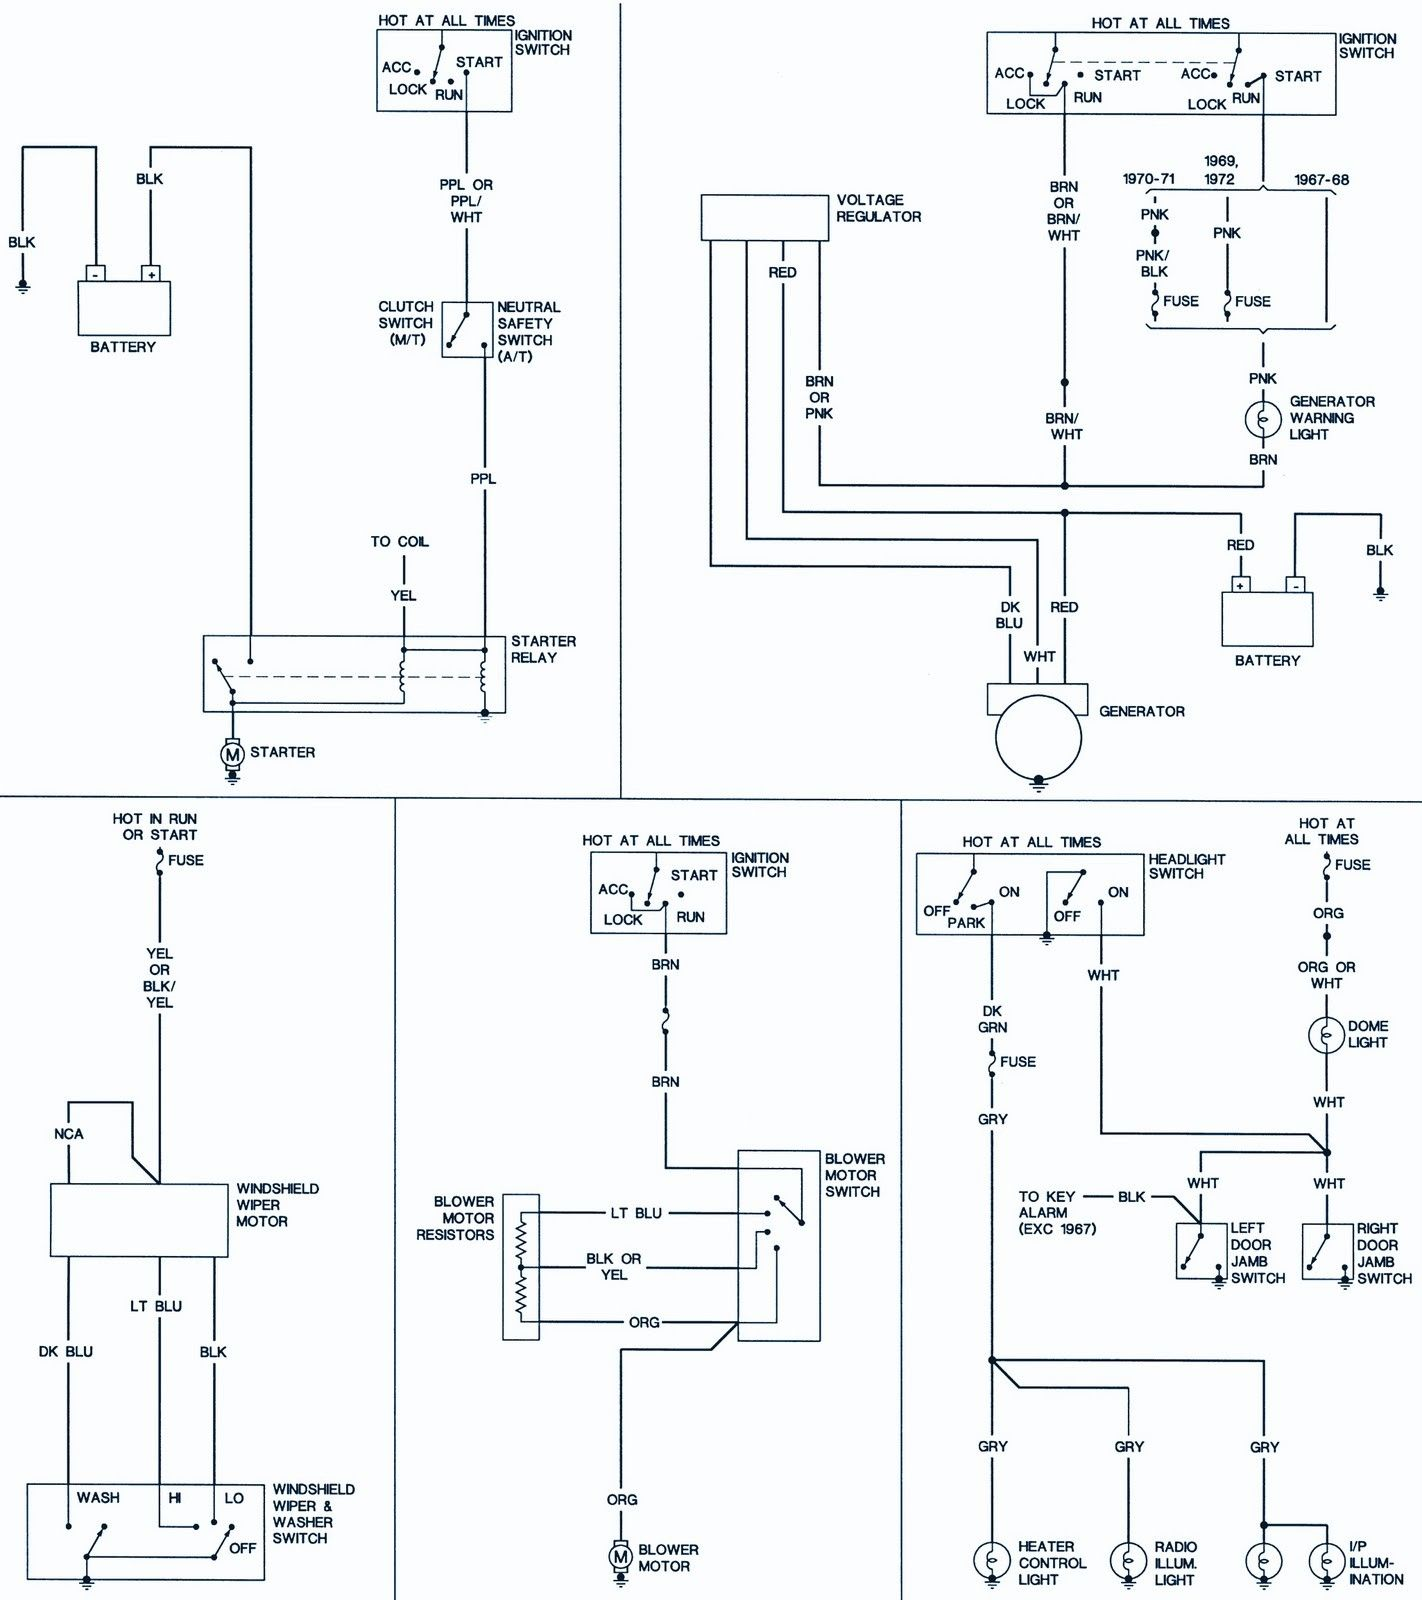 421C 72 C10 Wiring Diagram | Wiring ResourcesWiring Resources